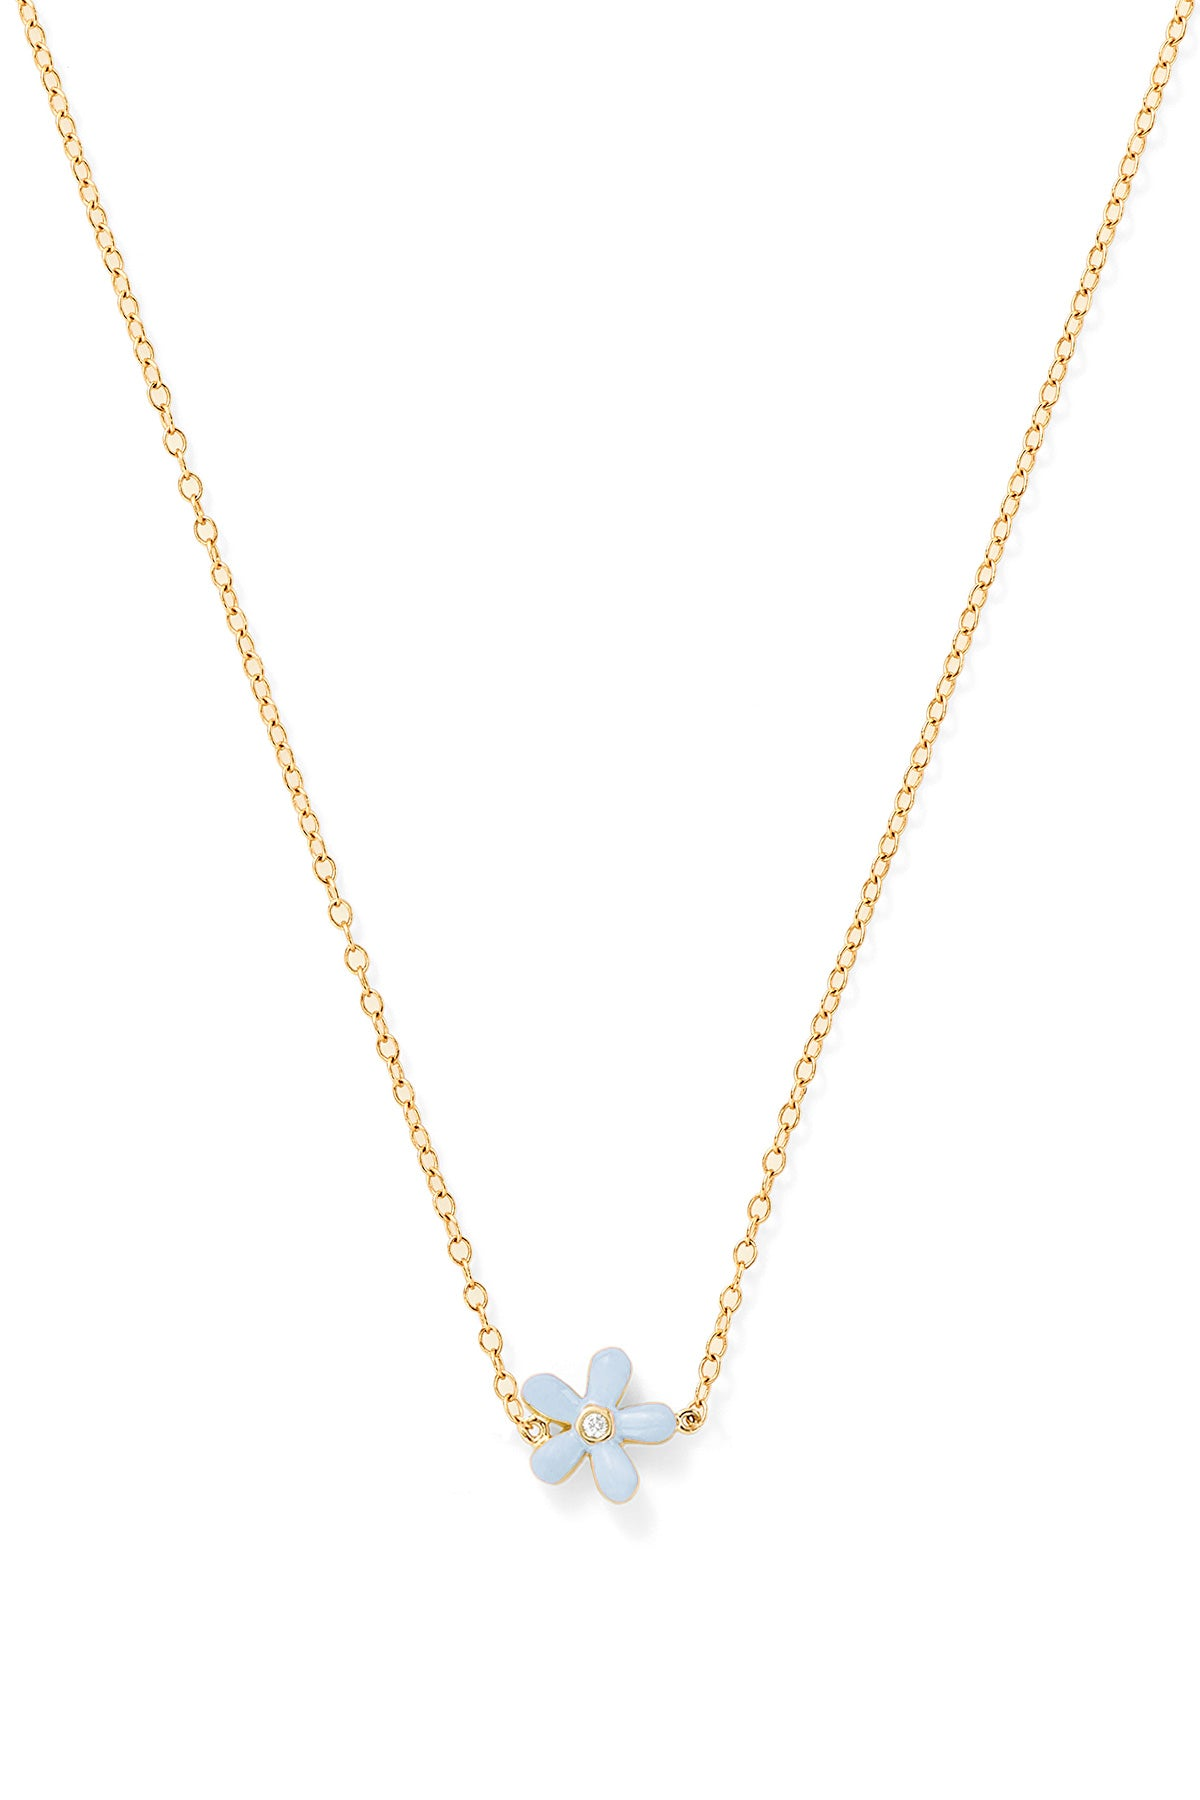 Single Wildflower Necklace - In Stock